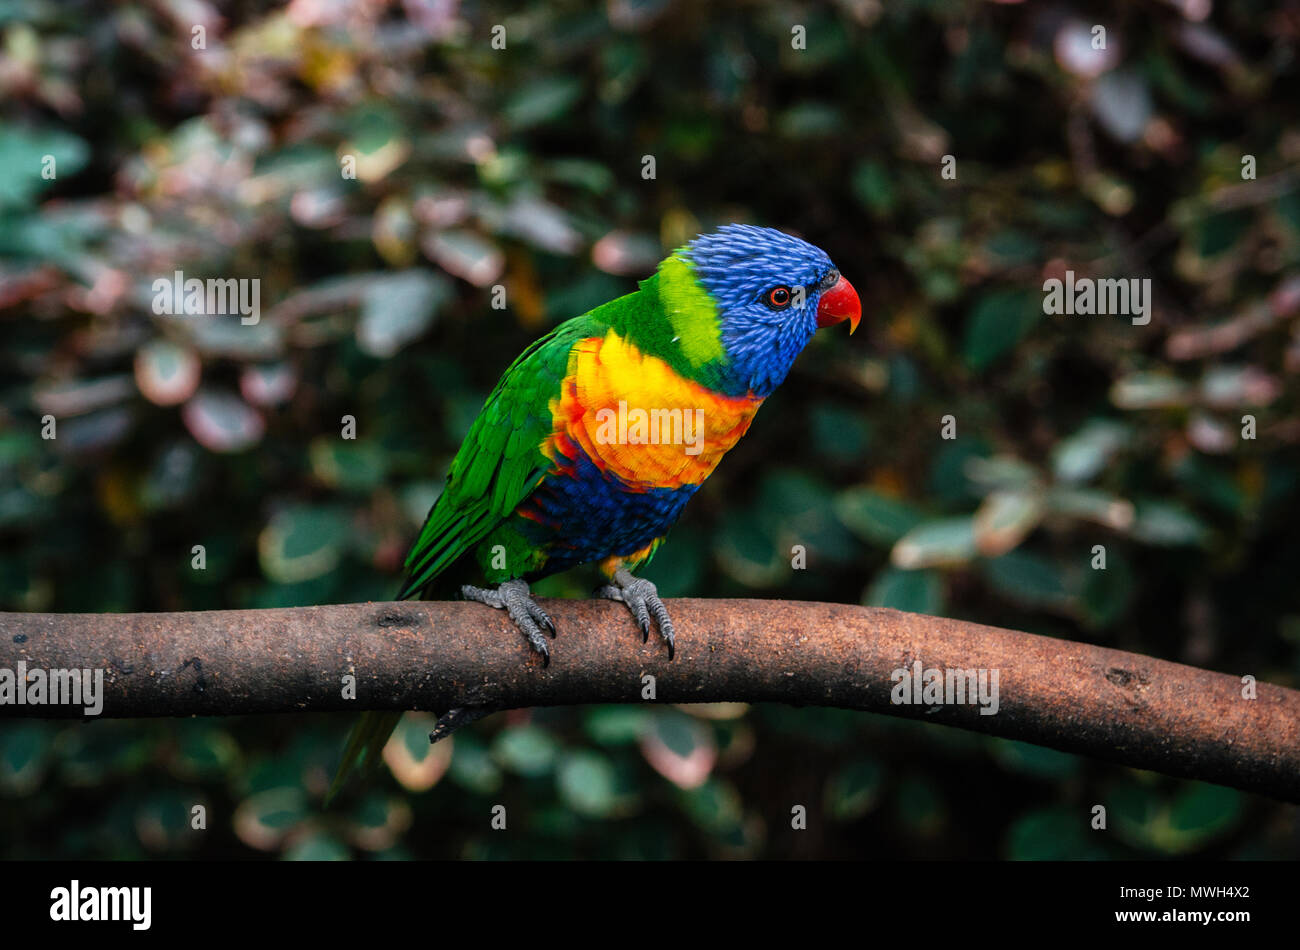 Colorful parrot Lori or Loriinae with blue head sits on branch of tree in forest close up - Stock Image